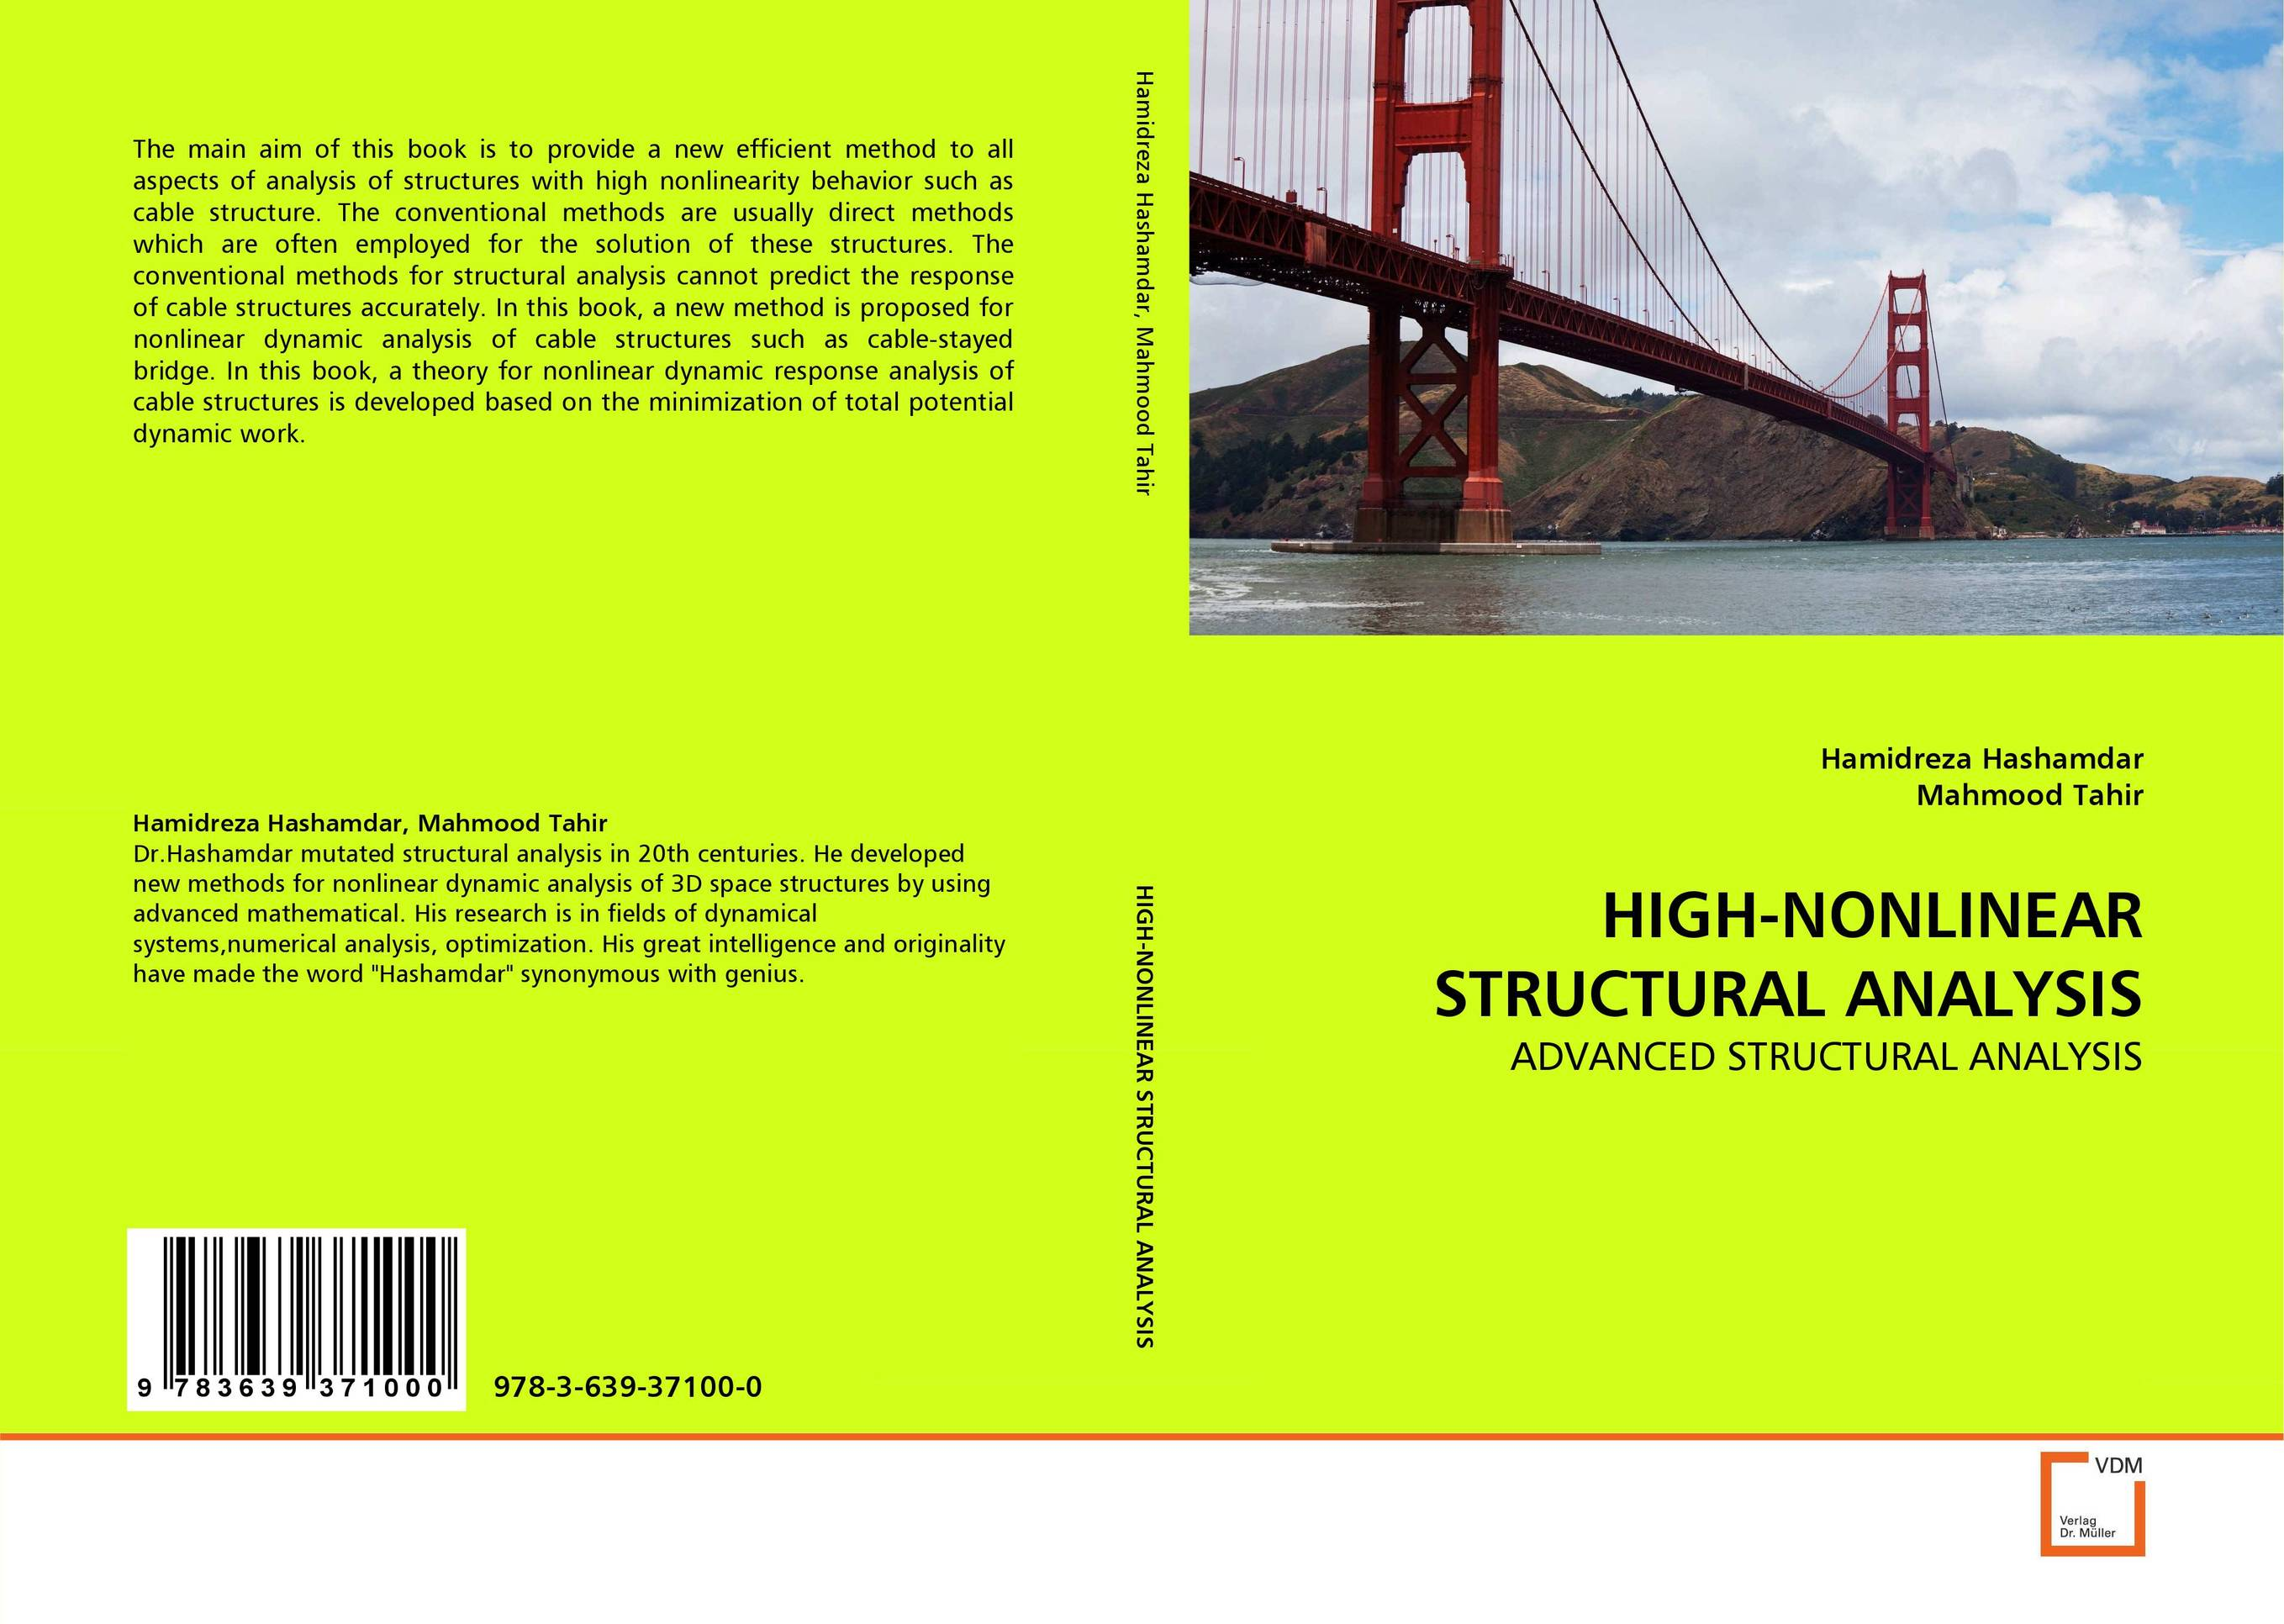 HIGH-NONLINEAR STRUCTURAL ANALYSIS complete dynamic analysis of stewart platform based on workspace